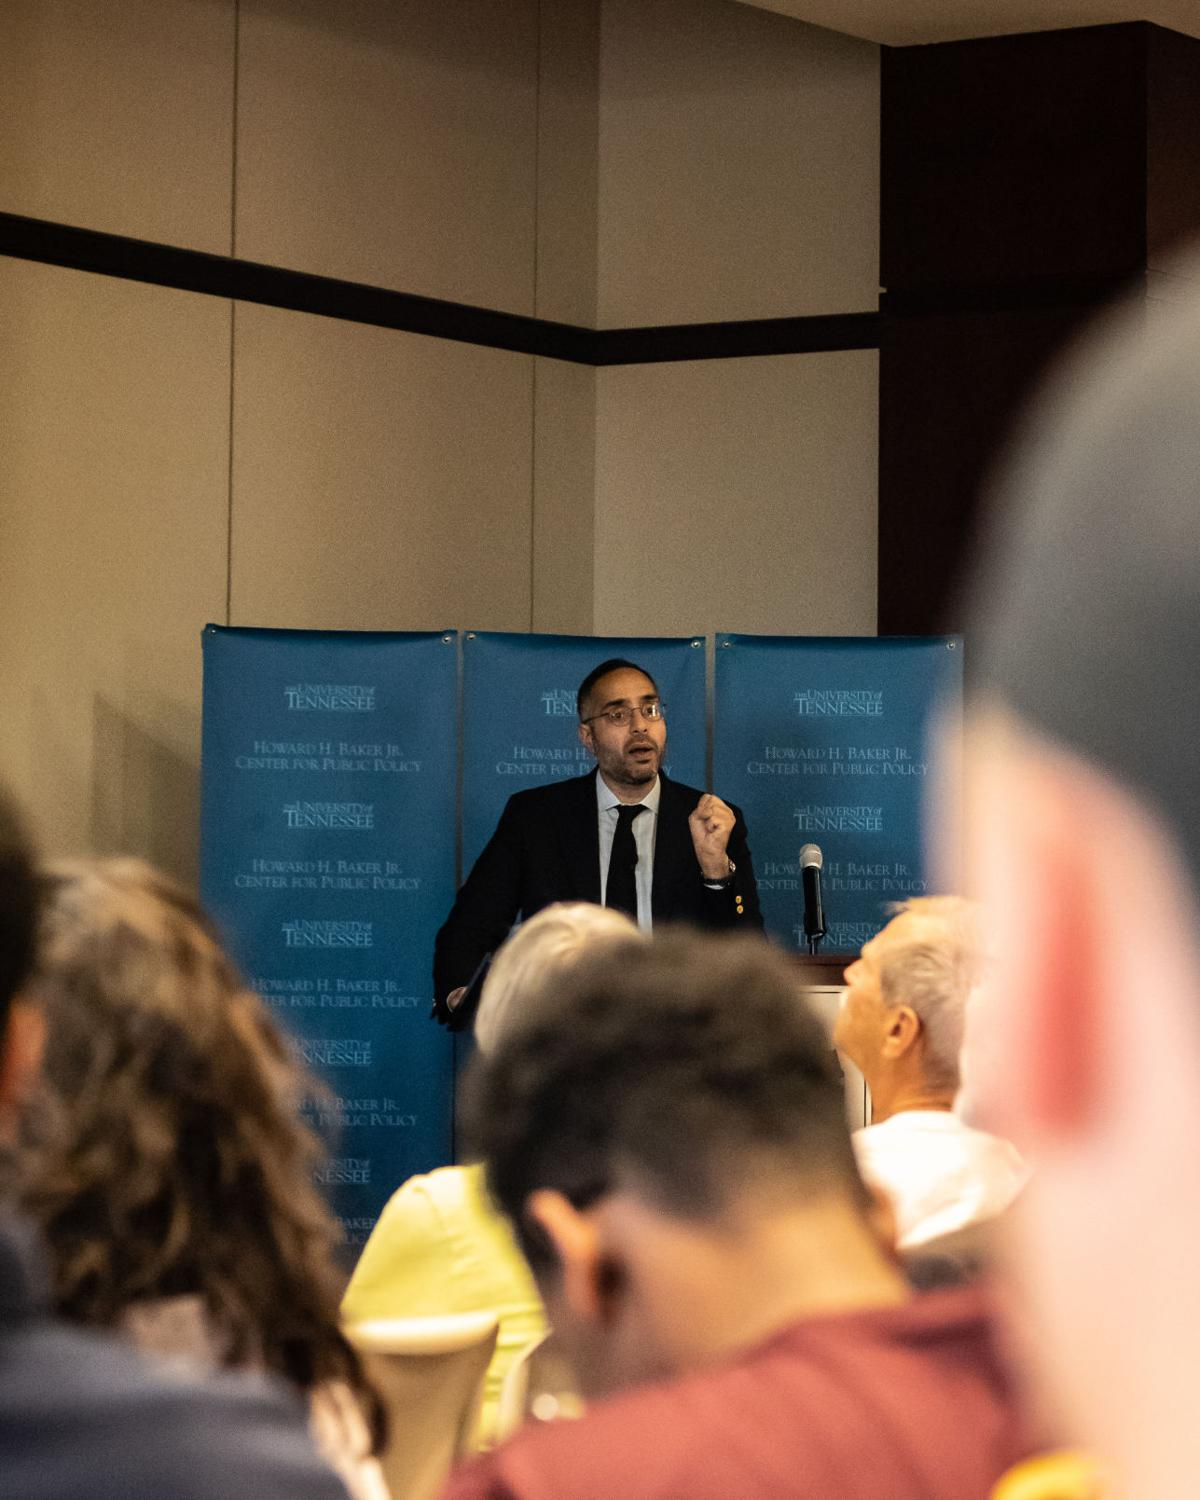 Islam and Democracy in the Age of Trump lecture